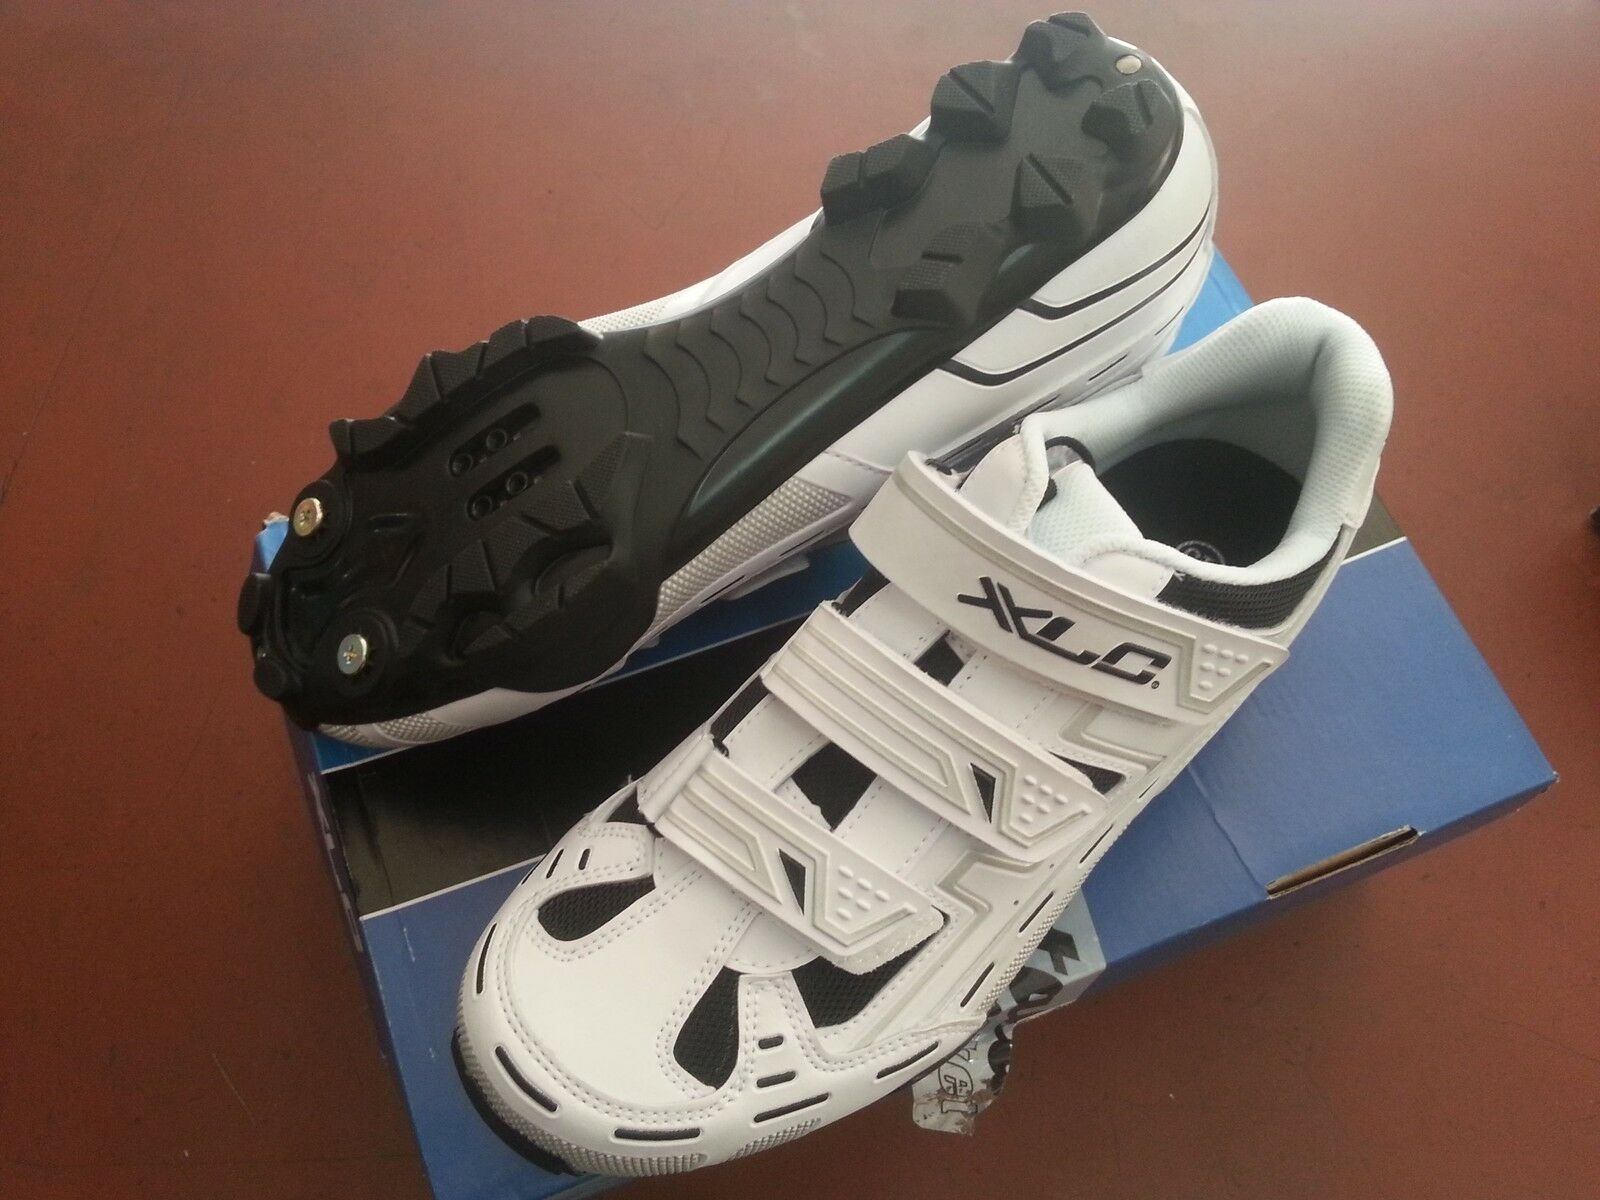 SHOES BIKE MTB SPINNING XLC CB-M06 WHITE CYCLING 3 TEAR SIZE 41